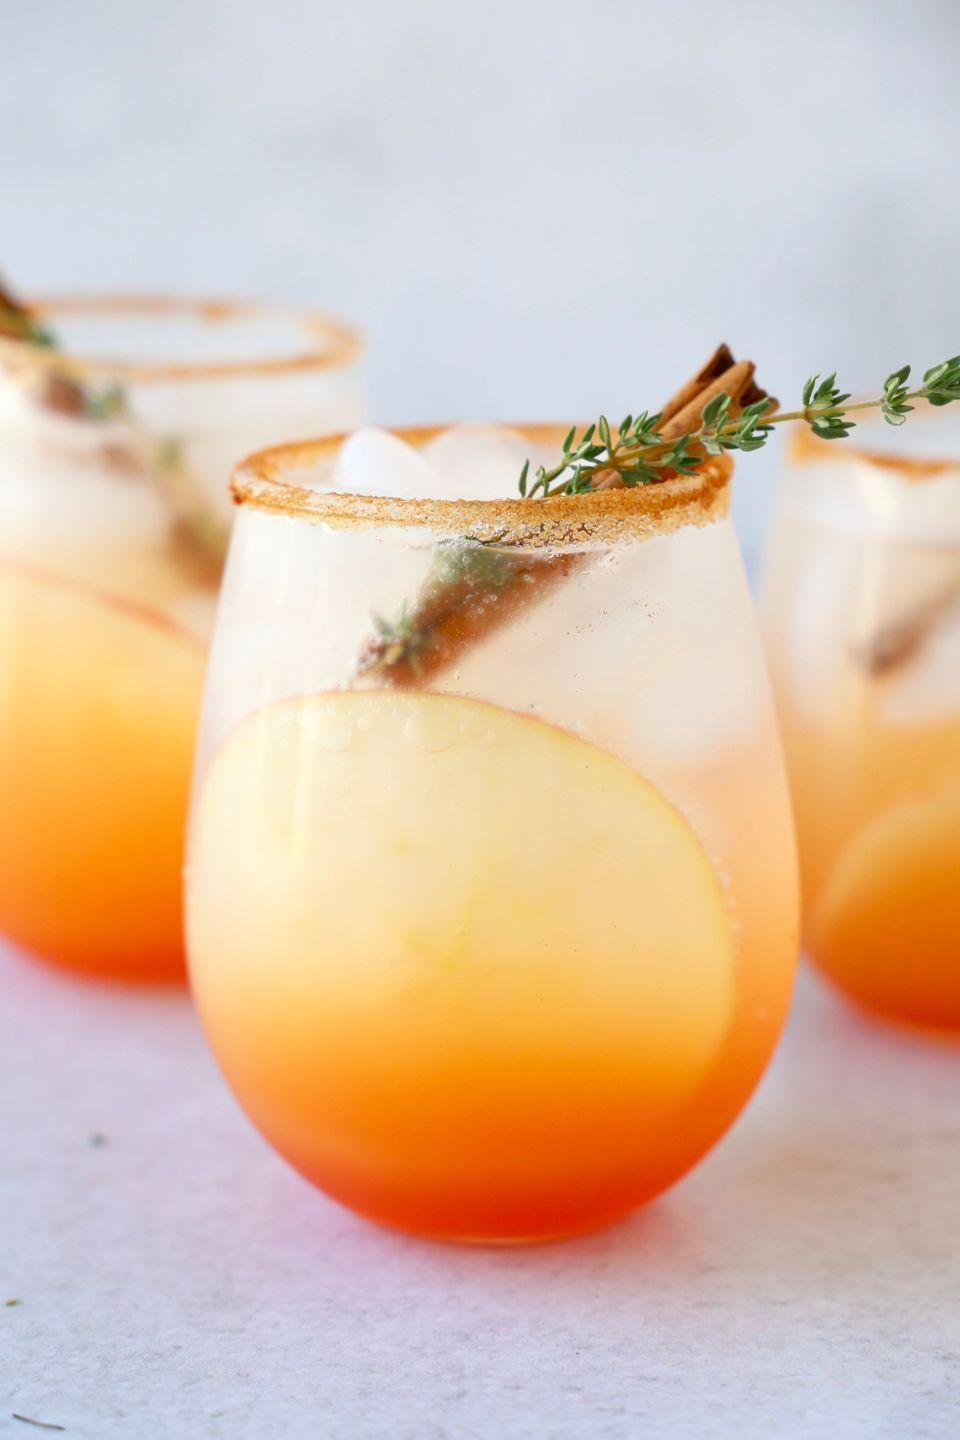 """<p>Enjoy your beloved Aperol spritz beyond summertime with this fall version. It calls for apple cider and a cinnamon sugar rim.</p><p><strong>Get the recipe at <a href=""""https://joyoliver.com/apple-cider-aperol-spritz/"""" rel=""""nofollow noopener"""" target=""""_blank"""" data-ylk=""""slk:Joy + Oliver"""" class=""""link rapid-noclick-resp"""">Joy + Oliver</a>.</strong></p><p><a class=""""link rapid-noclick-resp"""" href=""""https://go.redirectingat.com?id=74968X1596630&url=https%3A%2F%2Fwww.walmart.com%2Fsearch%2F%3Fquery%3Dstemless%2Bwine%2Bglass&sref=https%3A%2F%2Fwww.thepioneerwoman.com%2Ffood-cooking%2Fmeals-menus%2Fg33510531%2Ffall-cocktail-recipes%2F"""" rel=""""nofollow noopener"""" target=""""_blank"""" data-ylk=""""slk:SHOP STEMLESS WINE GLASSES"""">SHOP STEMLESS WINE GLASSES</a></p>"""